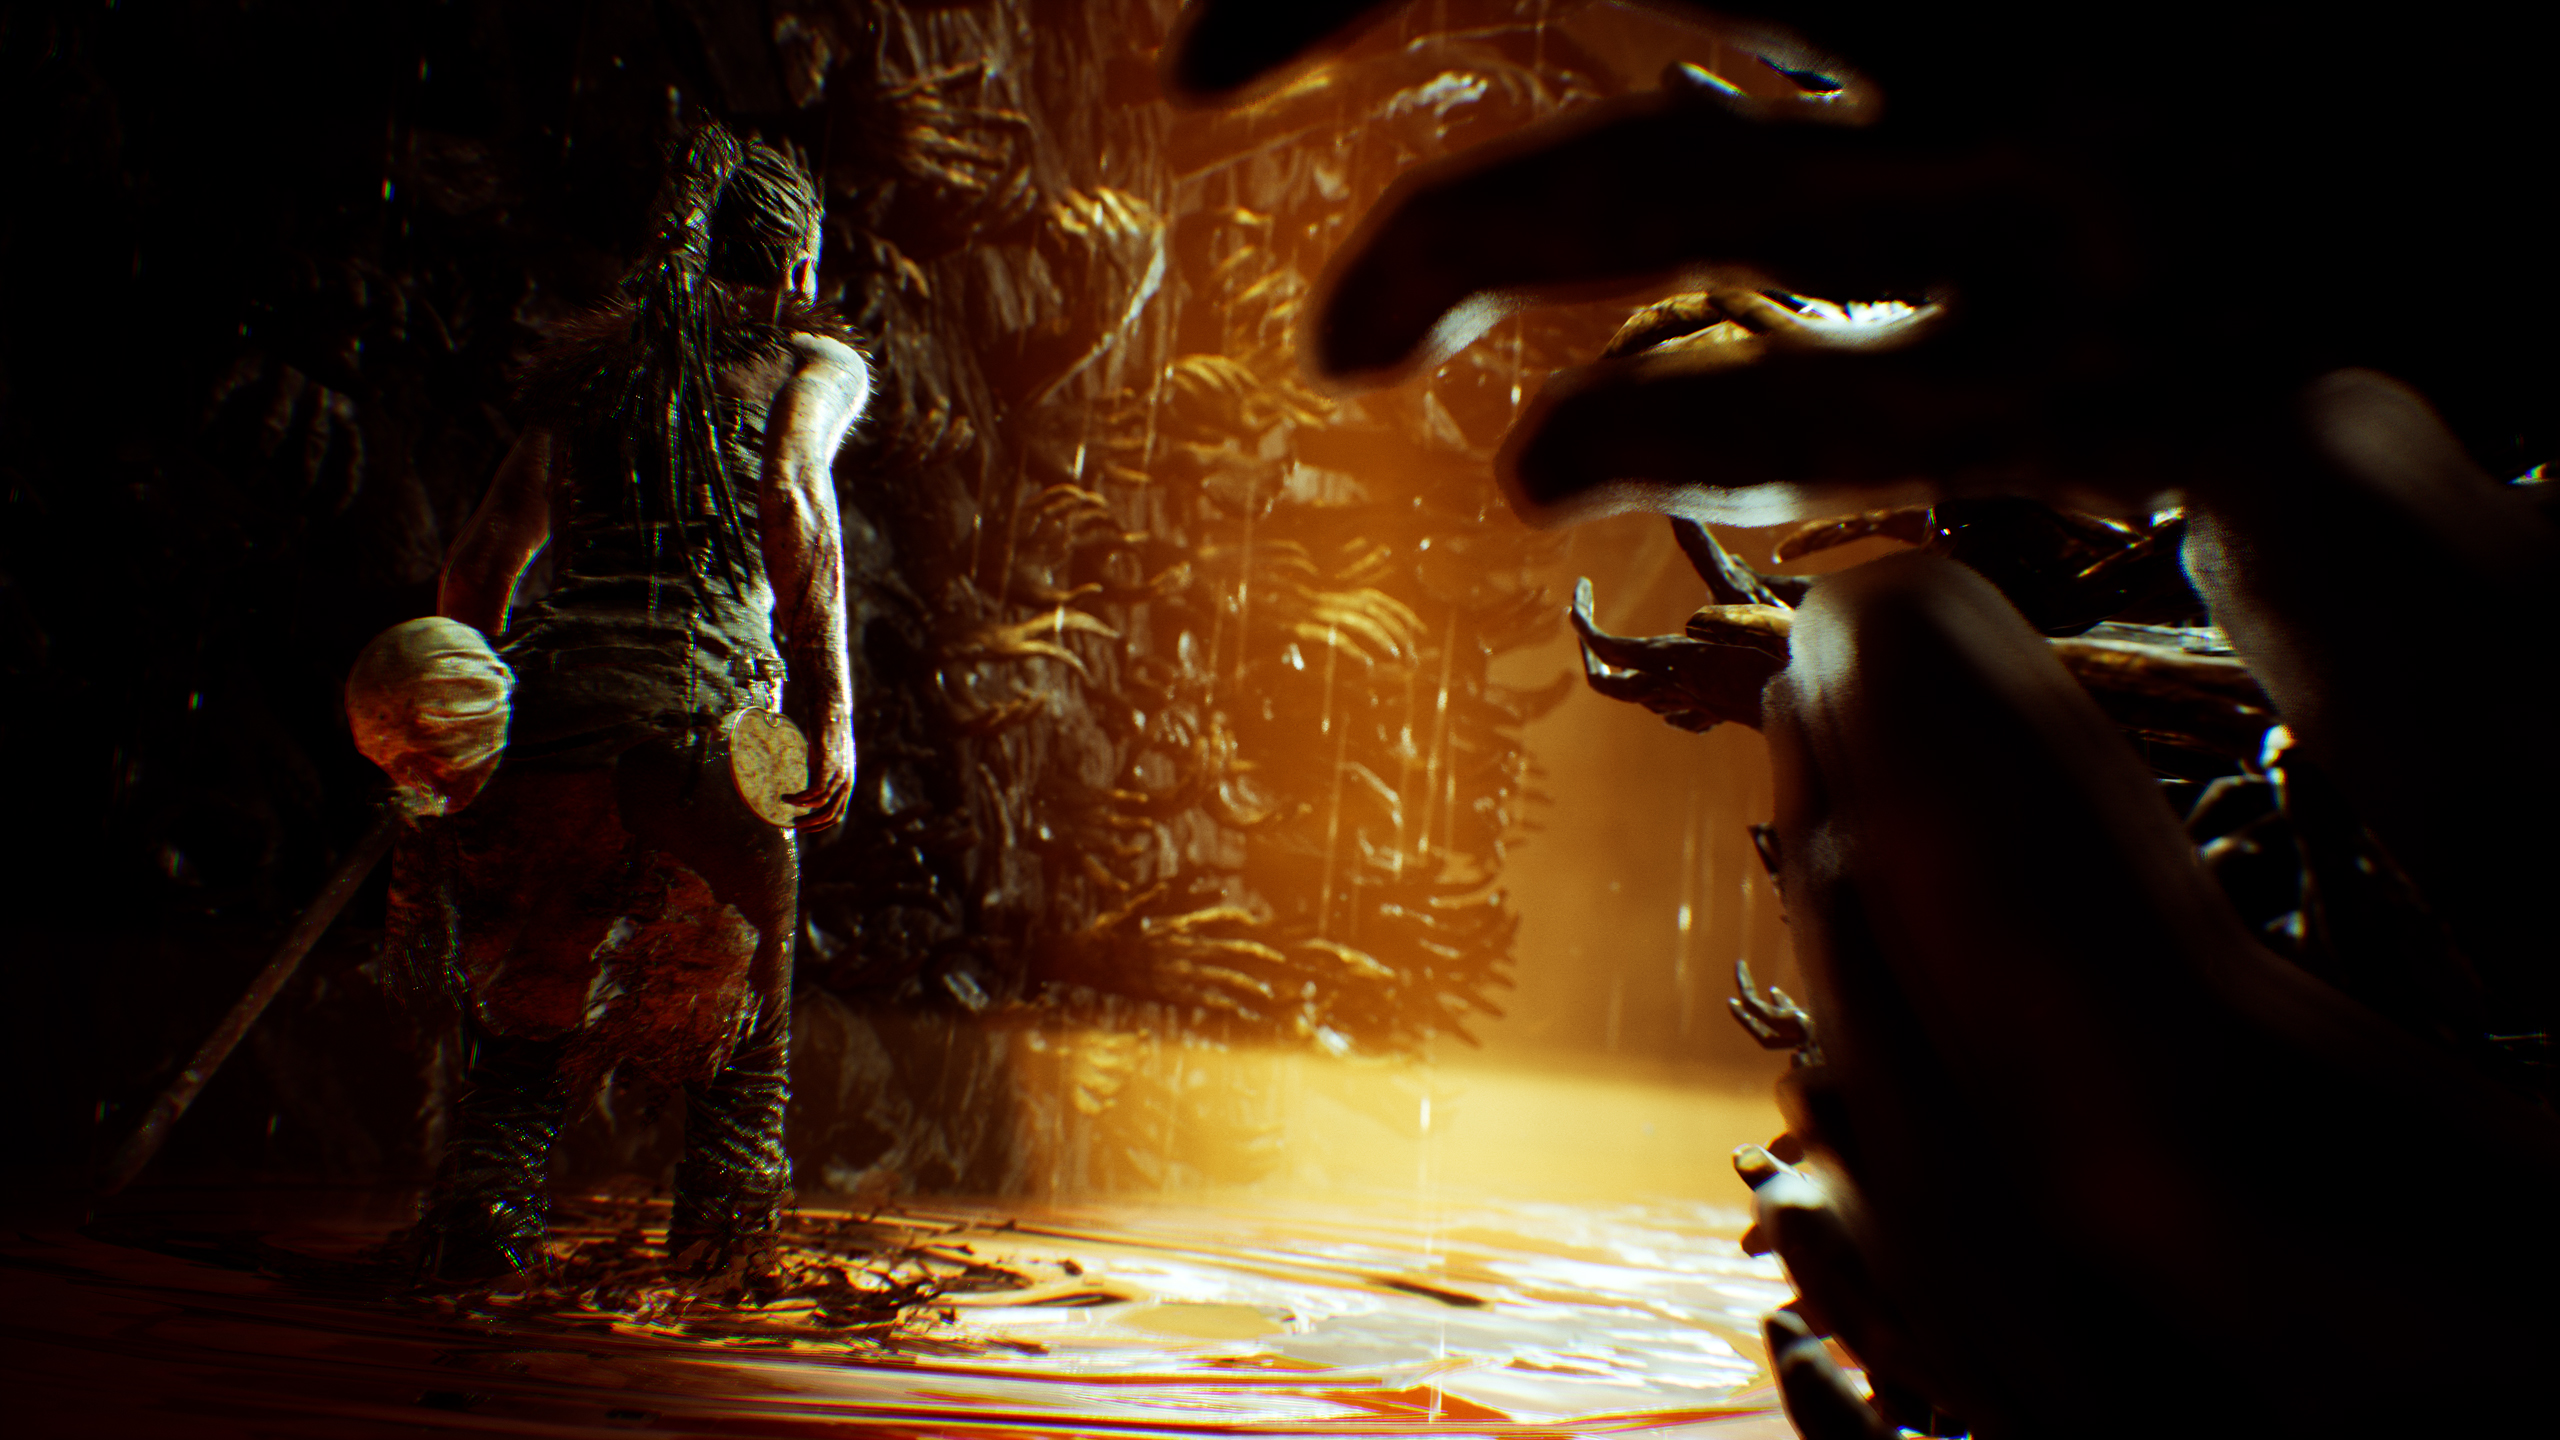 Hellblade: Senua's Sacrifice – How To Unlock The Extended Ending